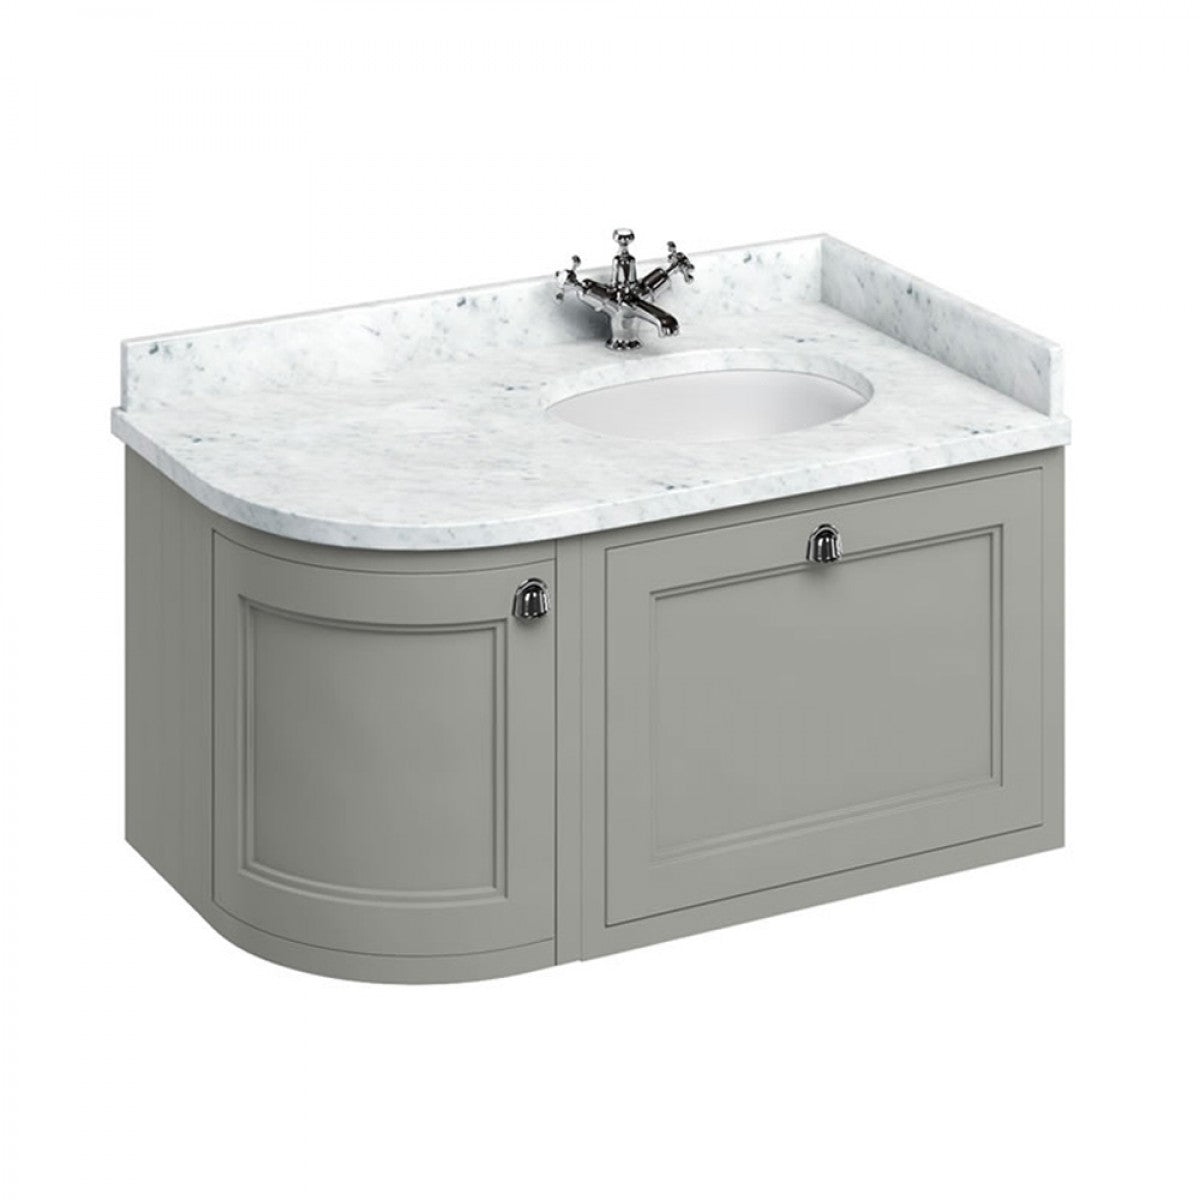 BURLINGTON 100 RIGHT HAND CORNER WALL HUNG VANITY UNIT WITH MINERVA WORKTOP & BASIN